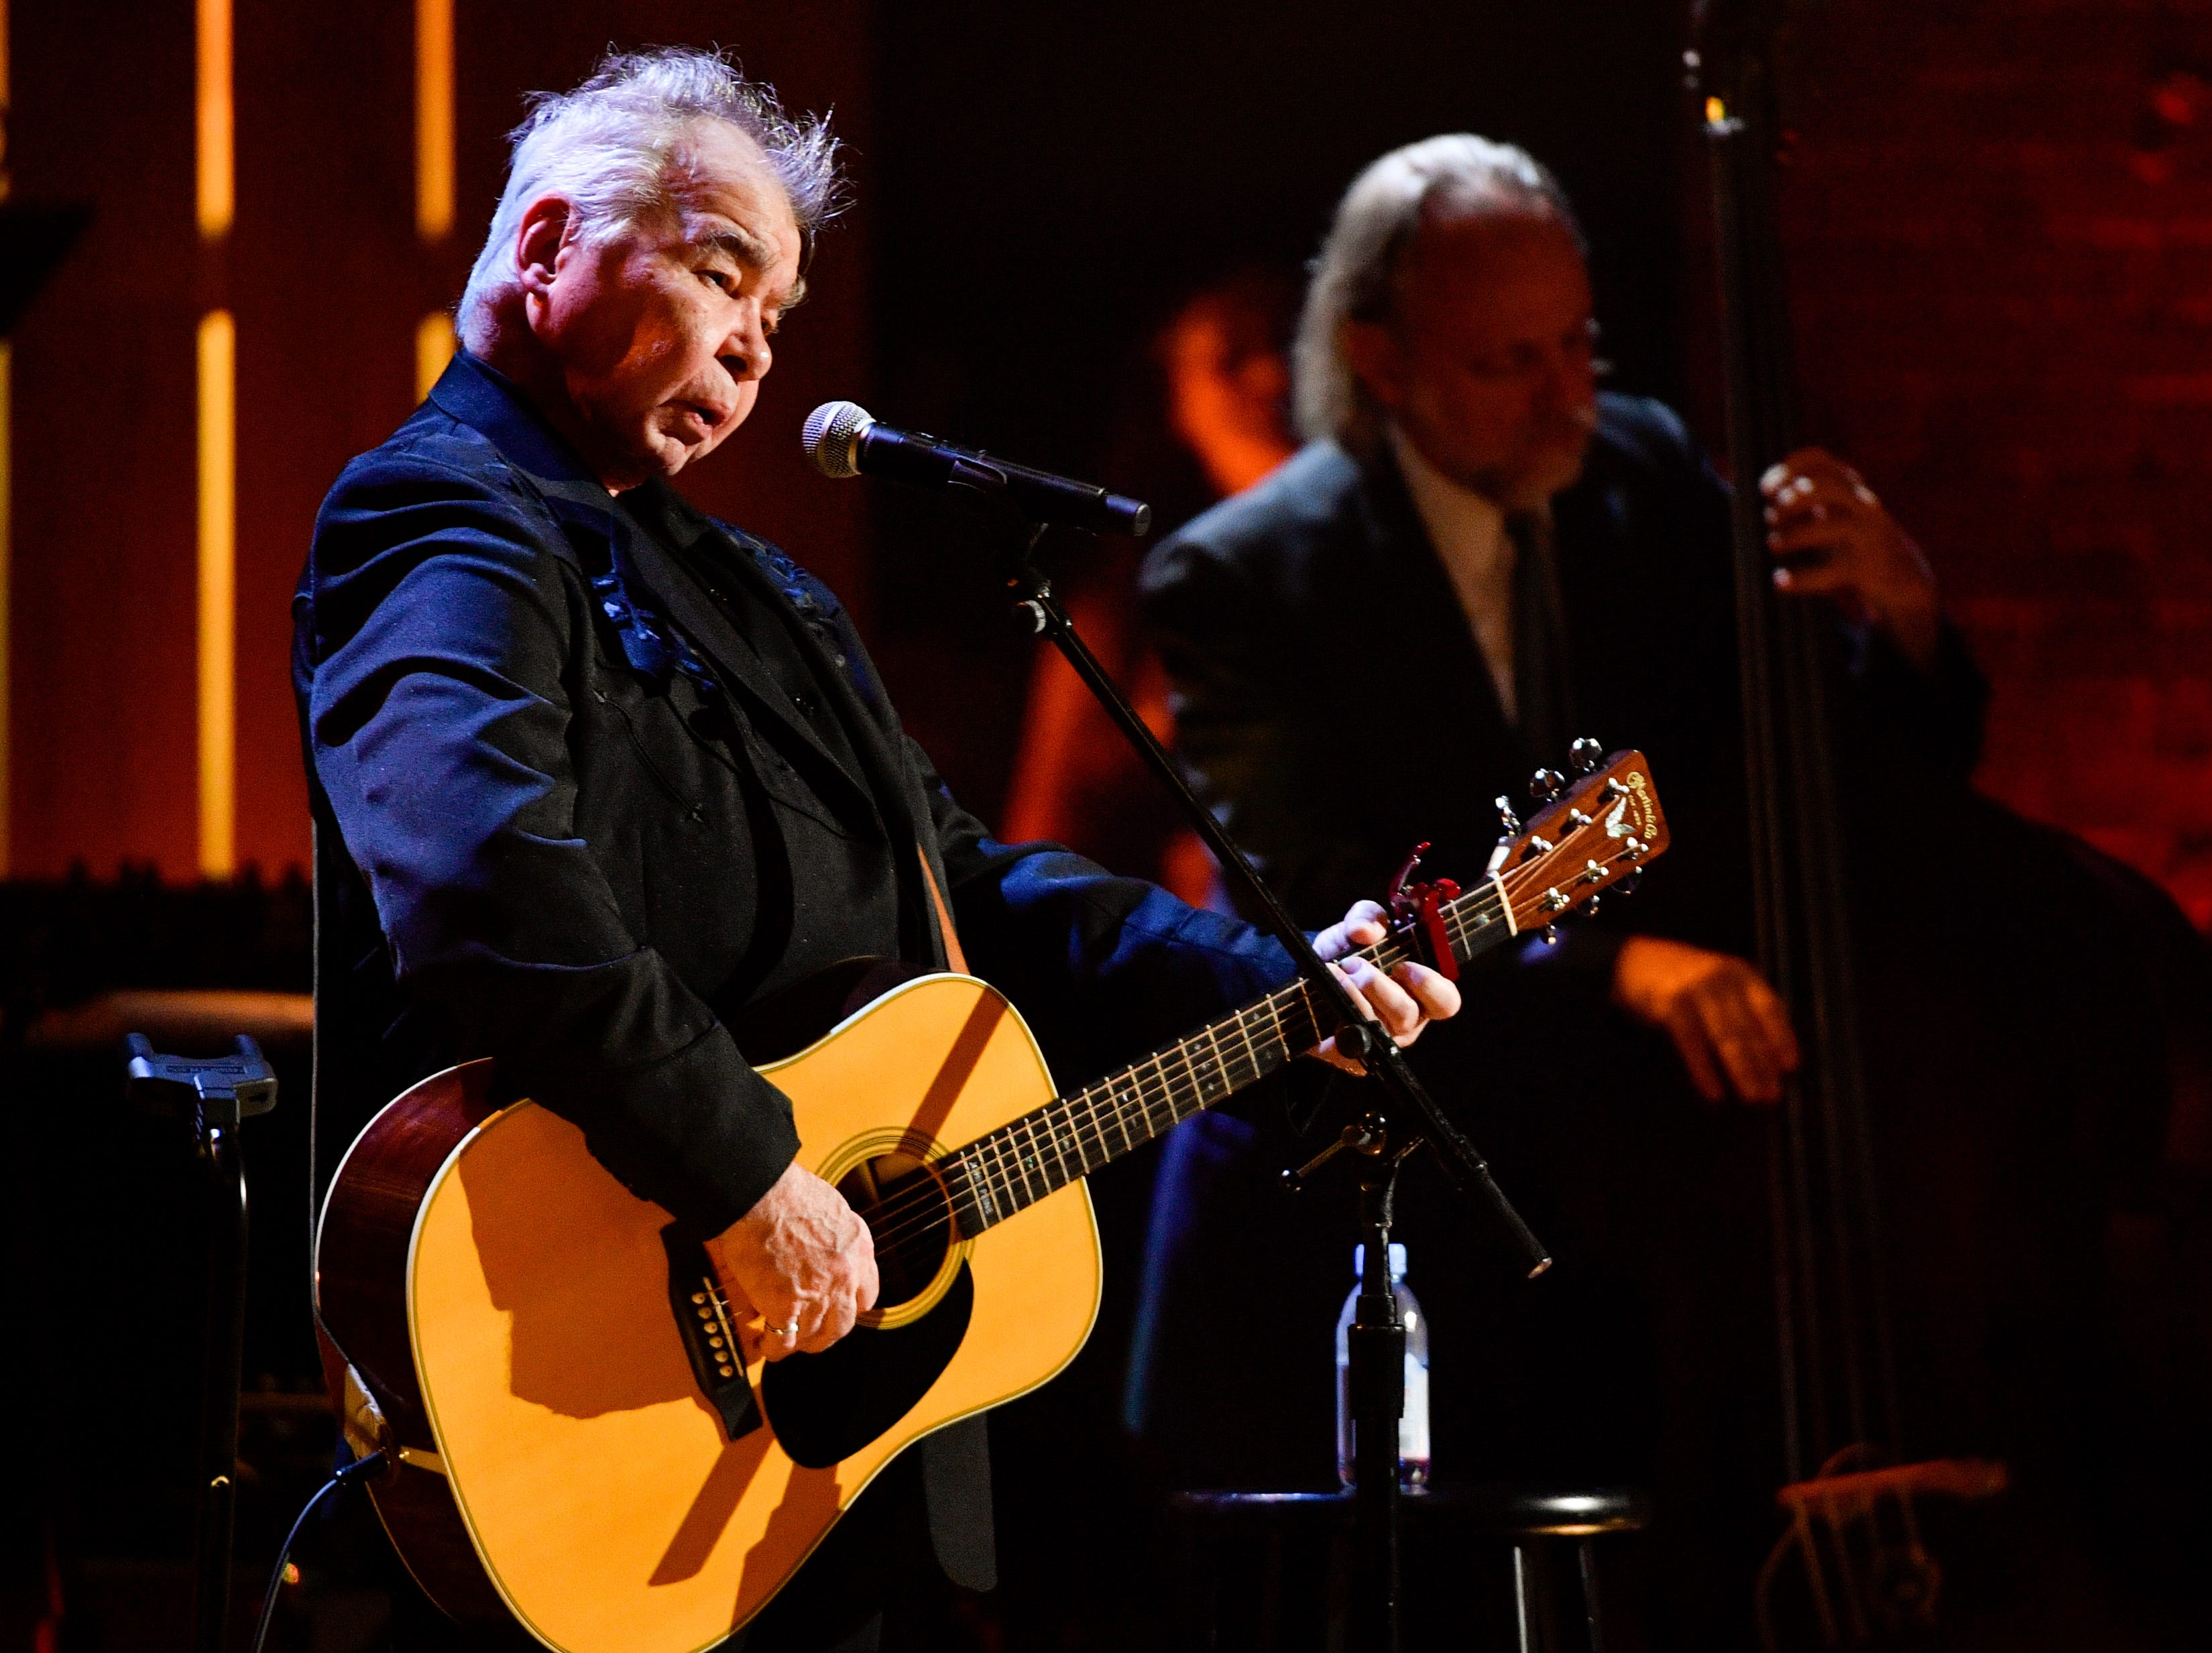 John Prine performs during the 2018 Americana Honors and Awards show at the Ryman Auditorium in Nashville, Tenn., Wednesday, Sept. 12, 2018.